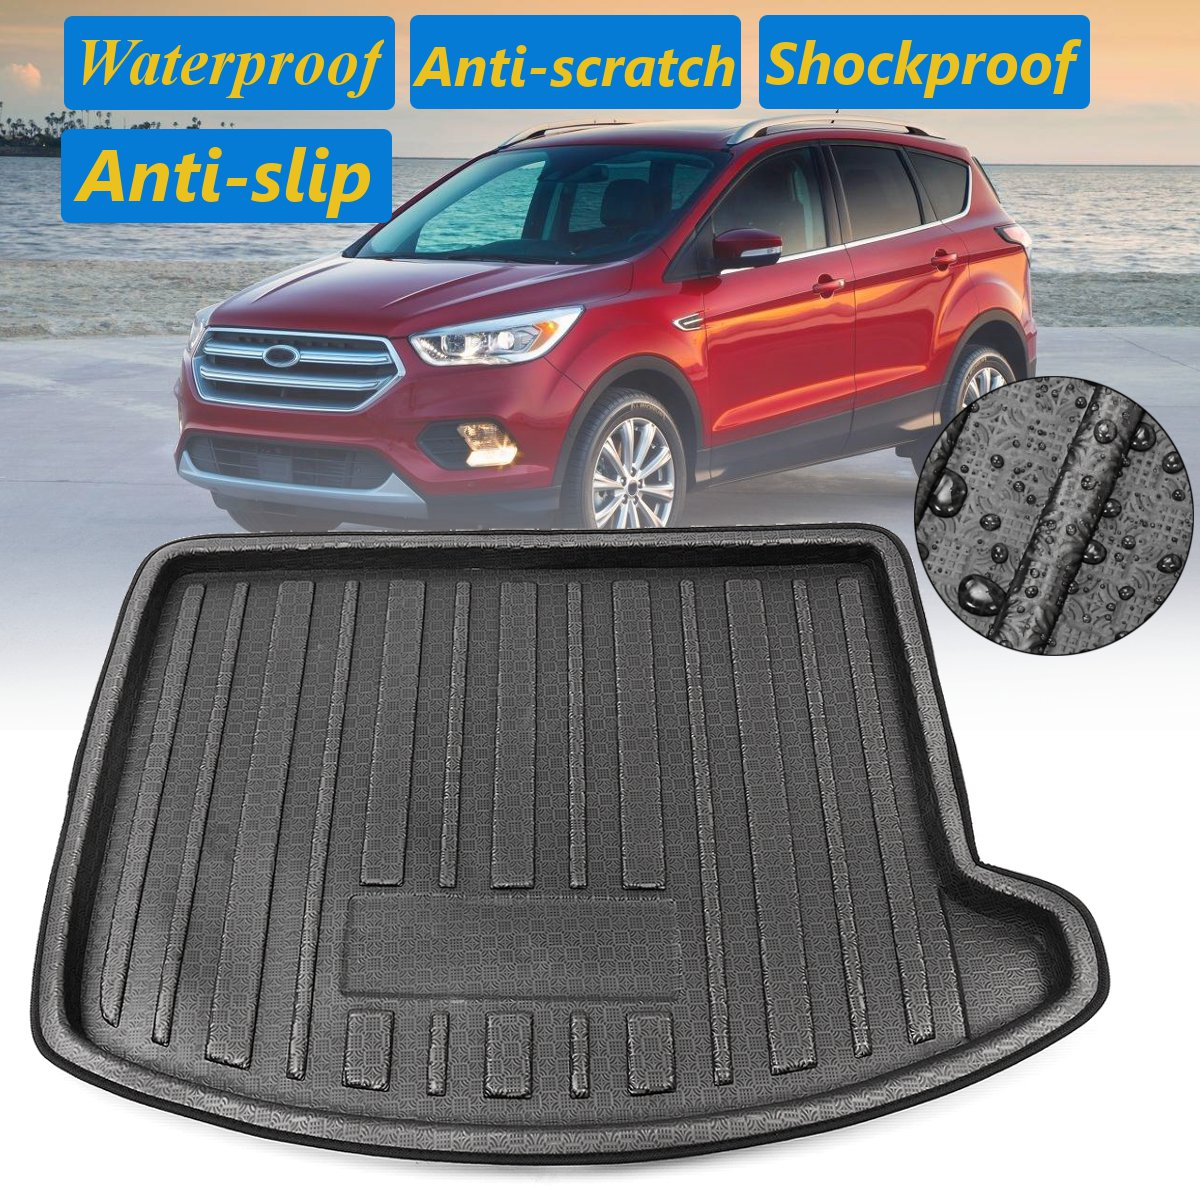 New Car Mat Car Boot Pad Trunk Cargo Liner Cargo Cover Cargo Mat Tray Floor Protector Mat Fit For Ford Escape 2013 2014 2015 2016 2017 2018 2019 Cargo Liners